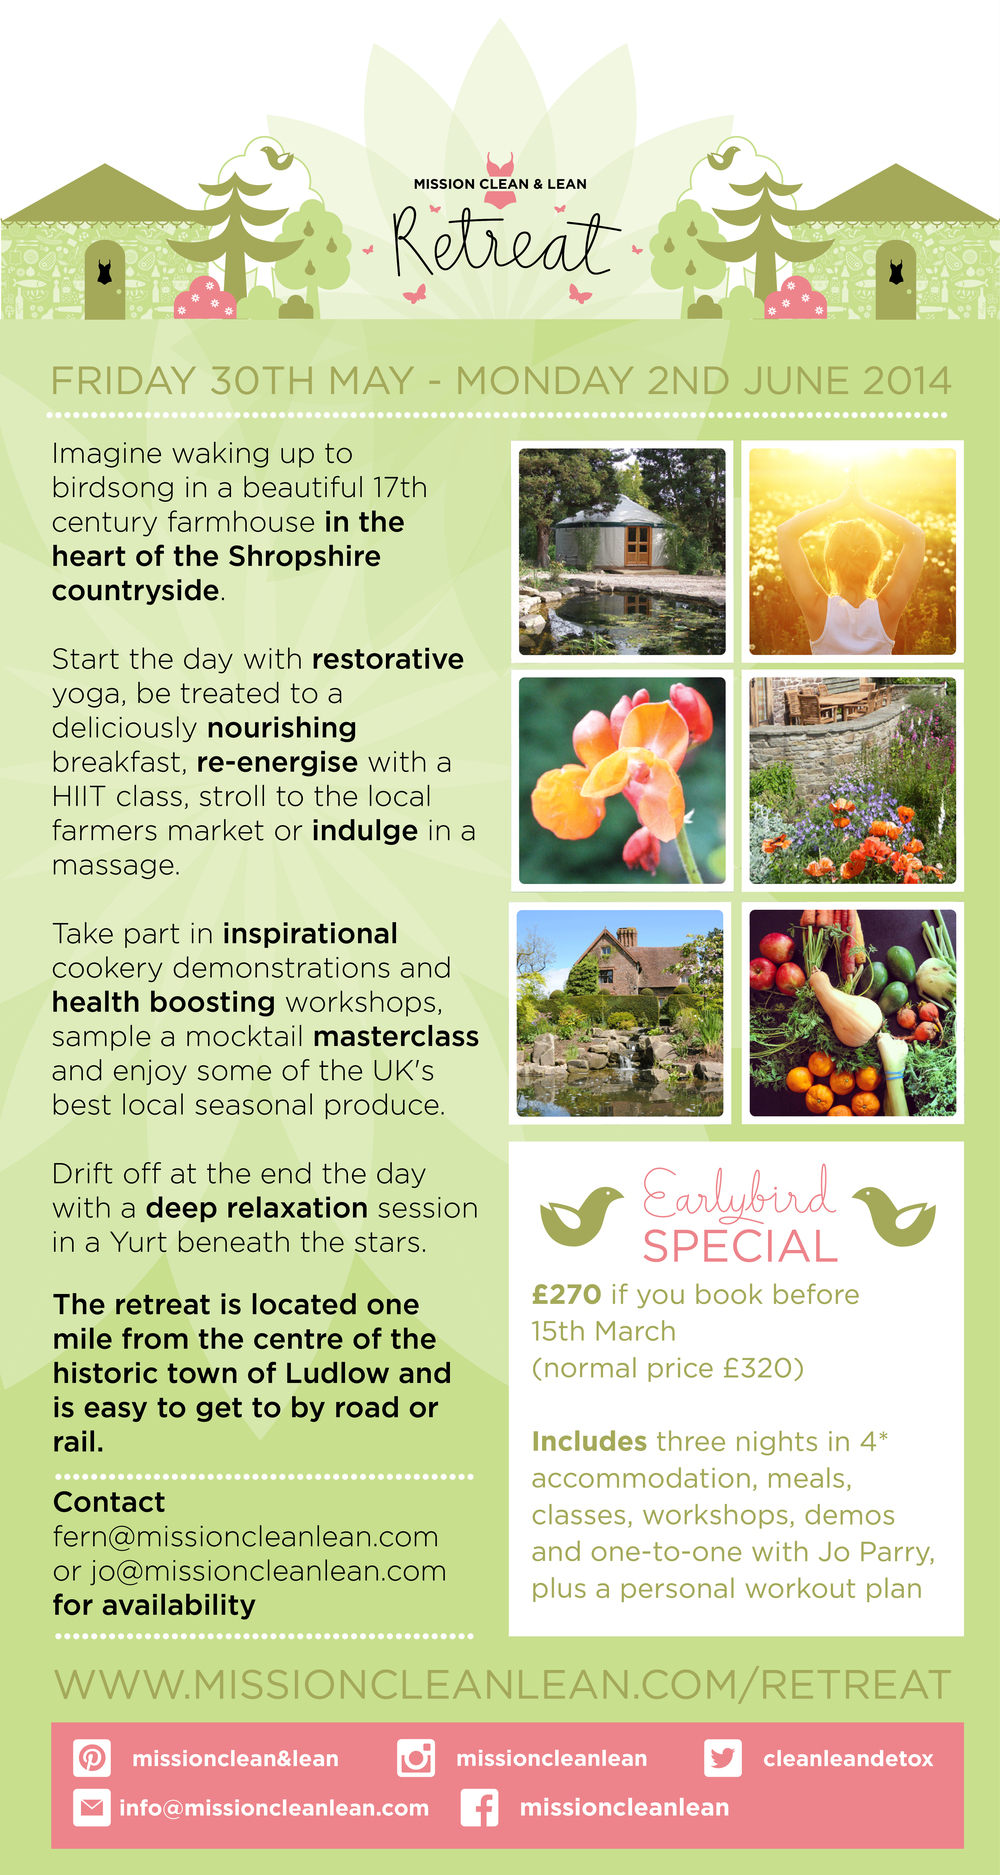 RETREAT_MAIN_FLYER-01.jpg